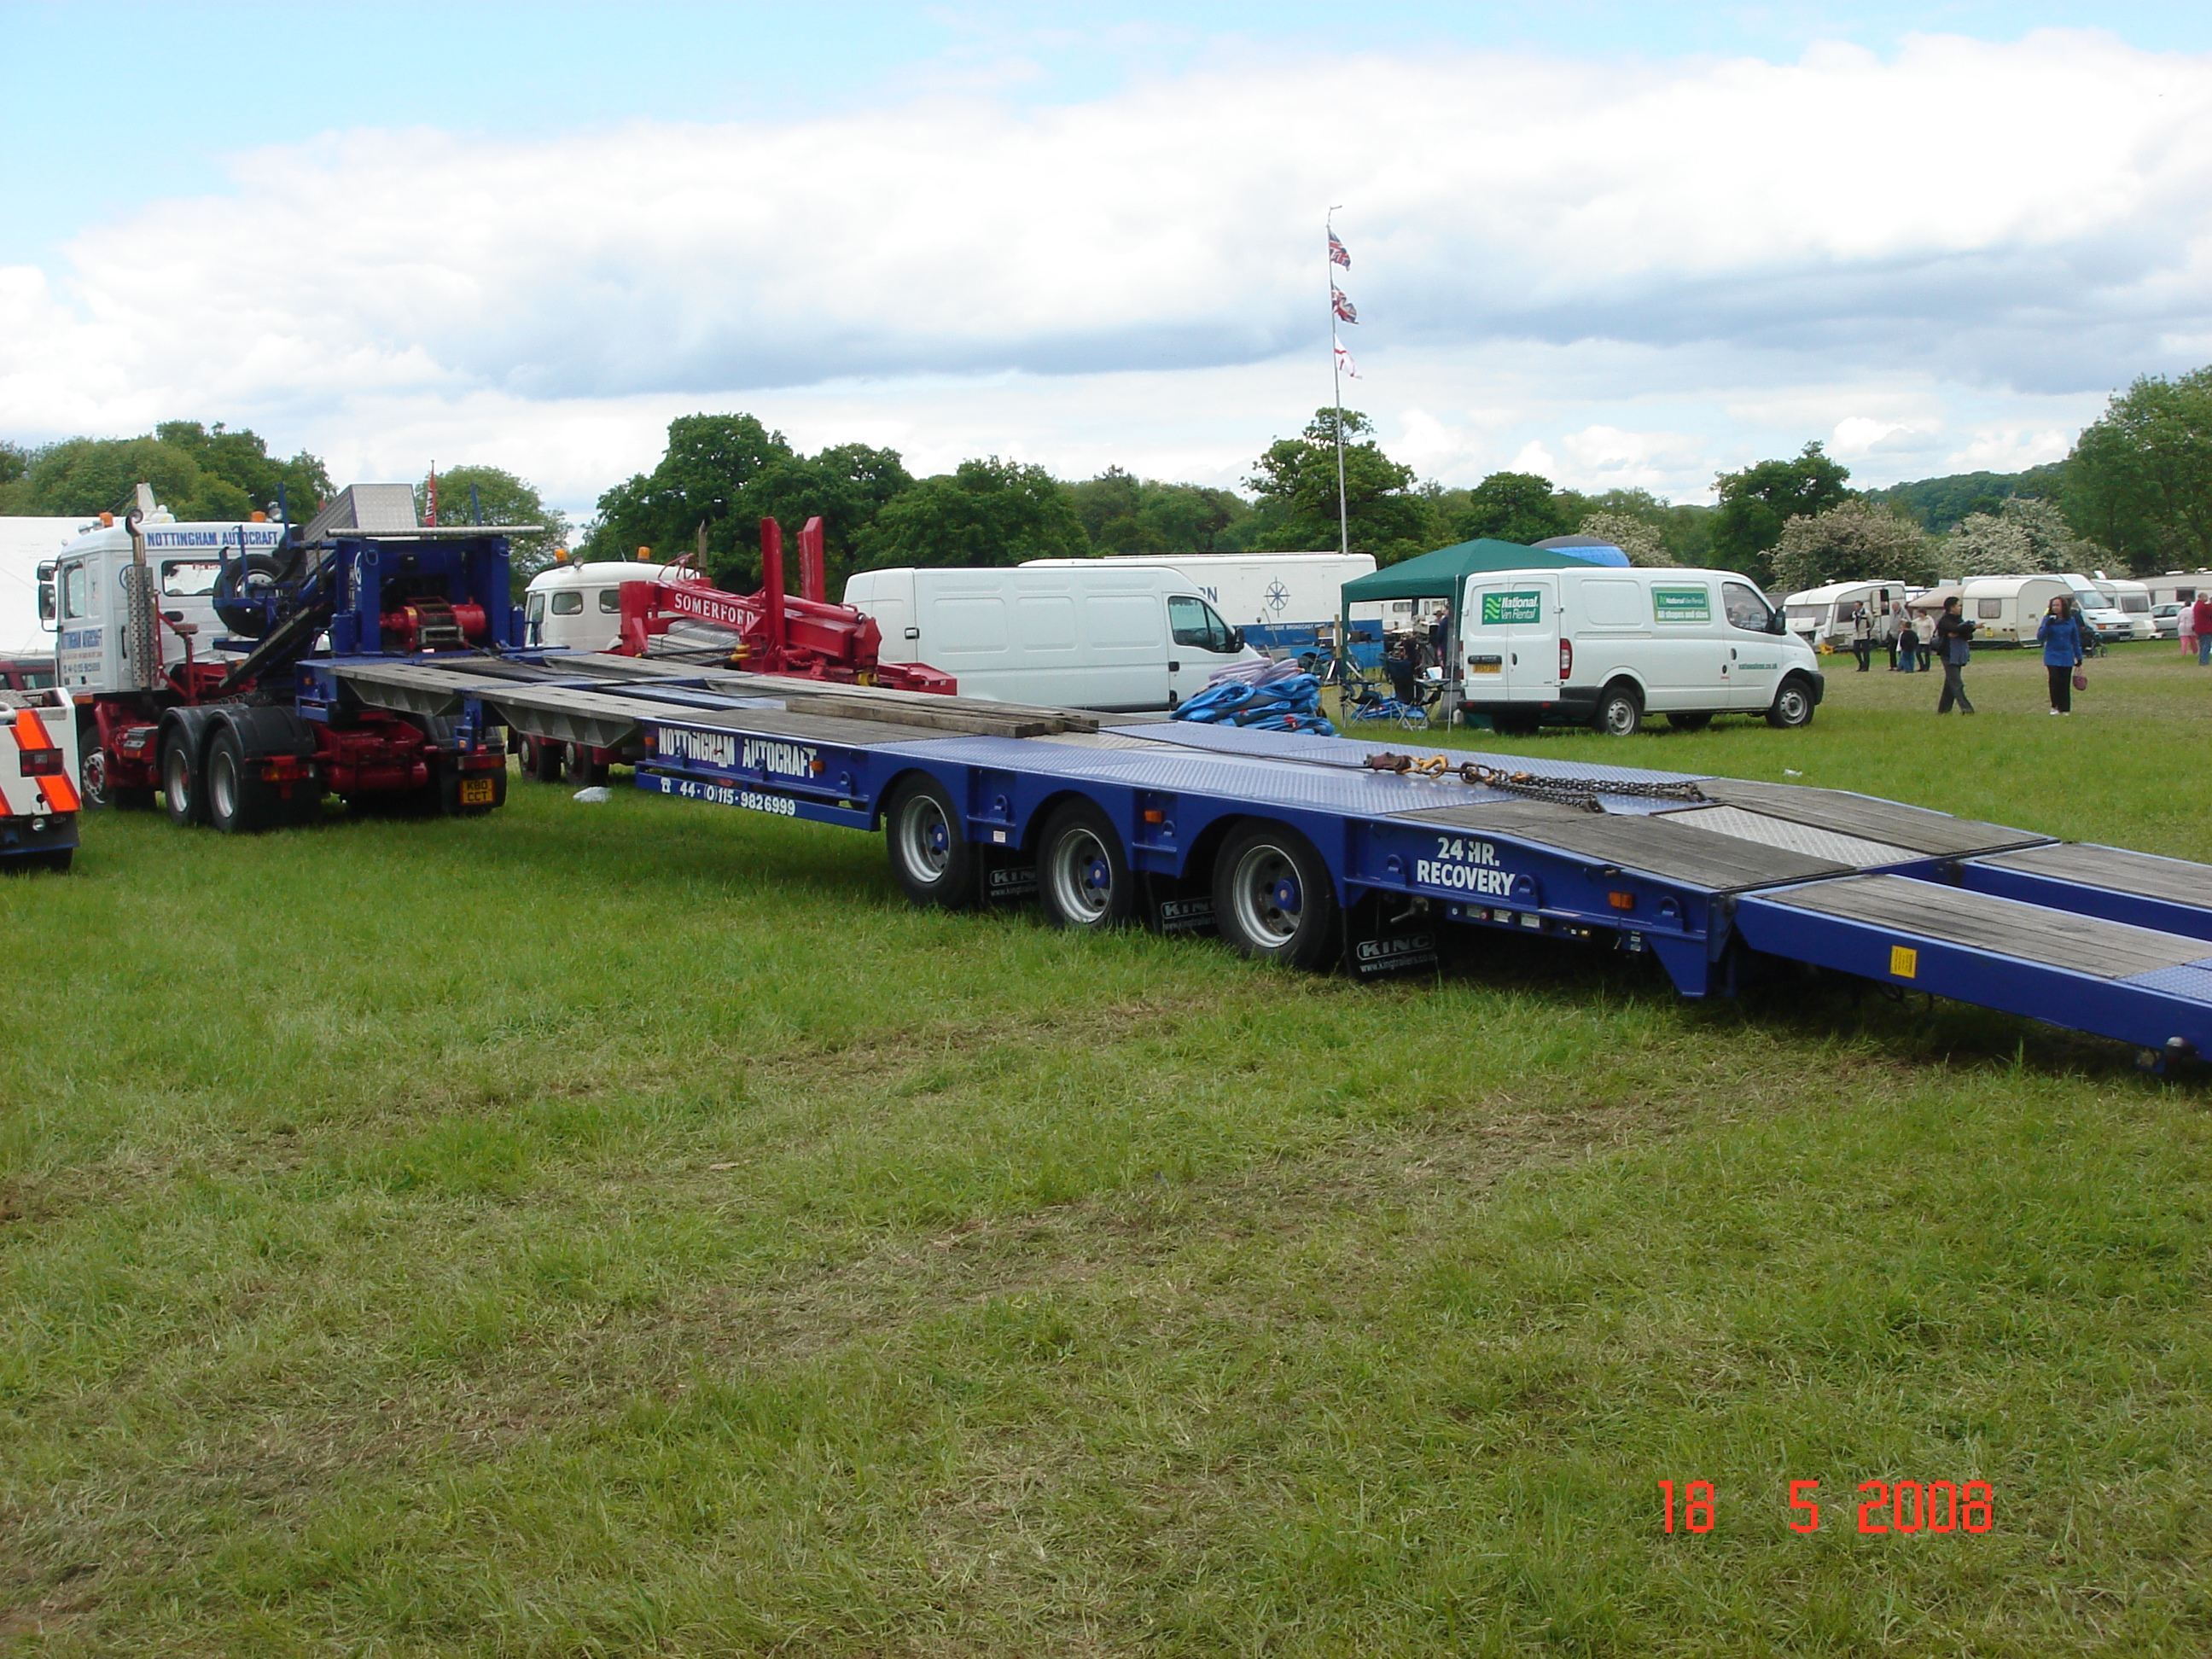 Recovery Trailers uk Recovery Trailer Showwing Low